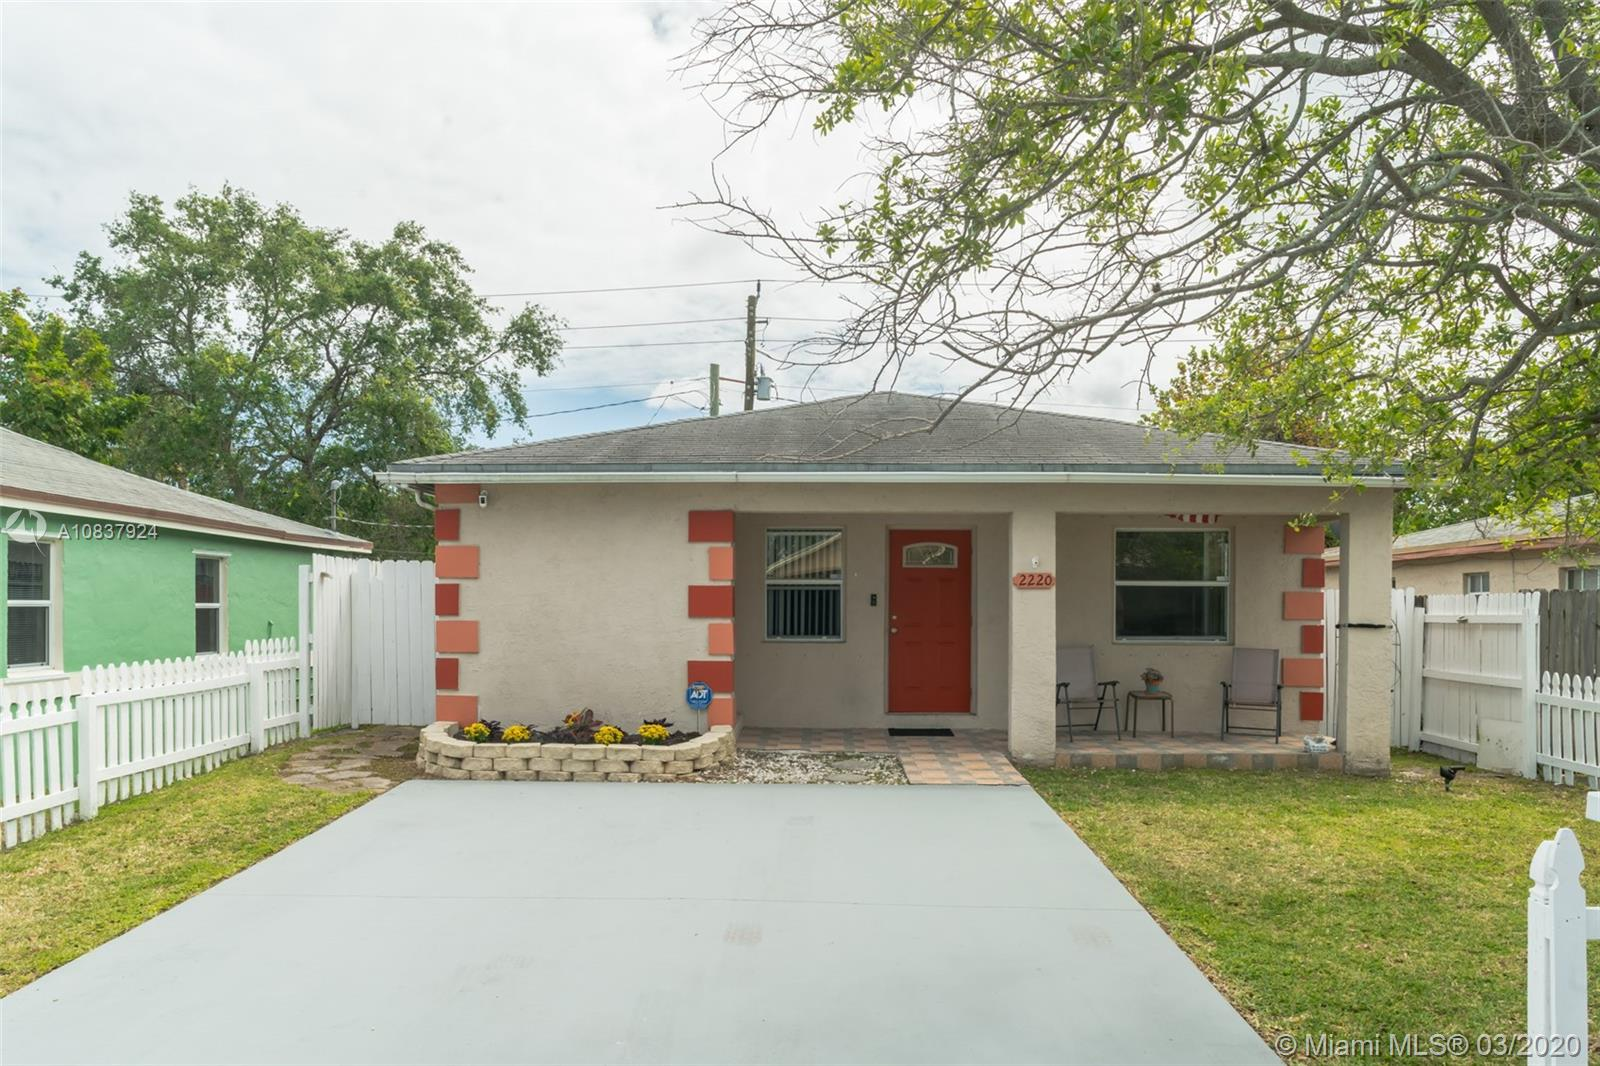 2220 Raleigh St, Hollywood, FL 33020 - Hollywood, FL real estate listing